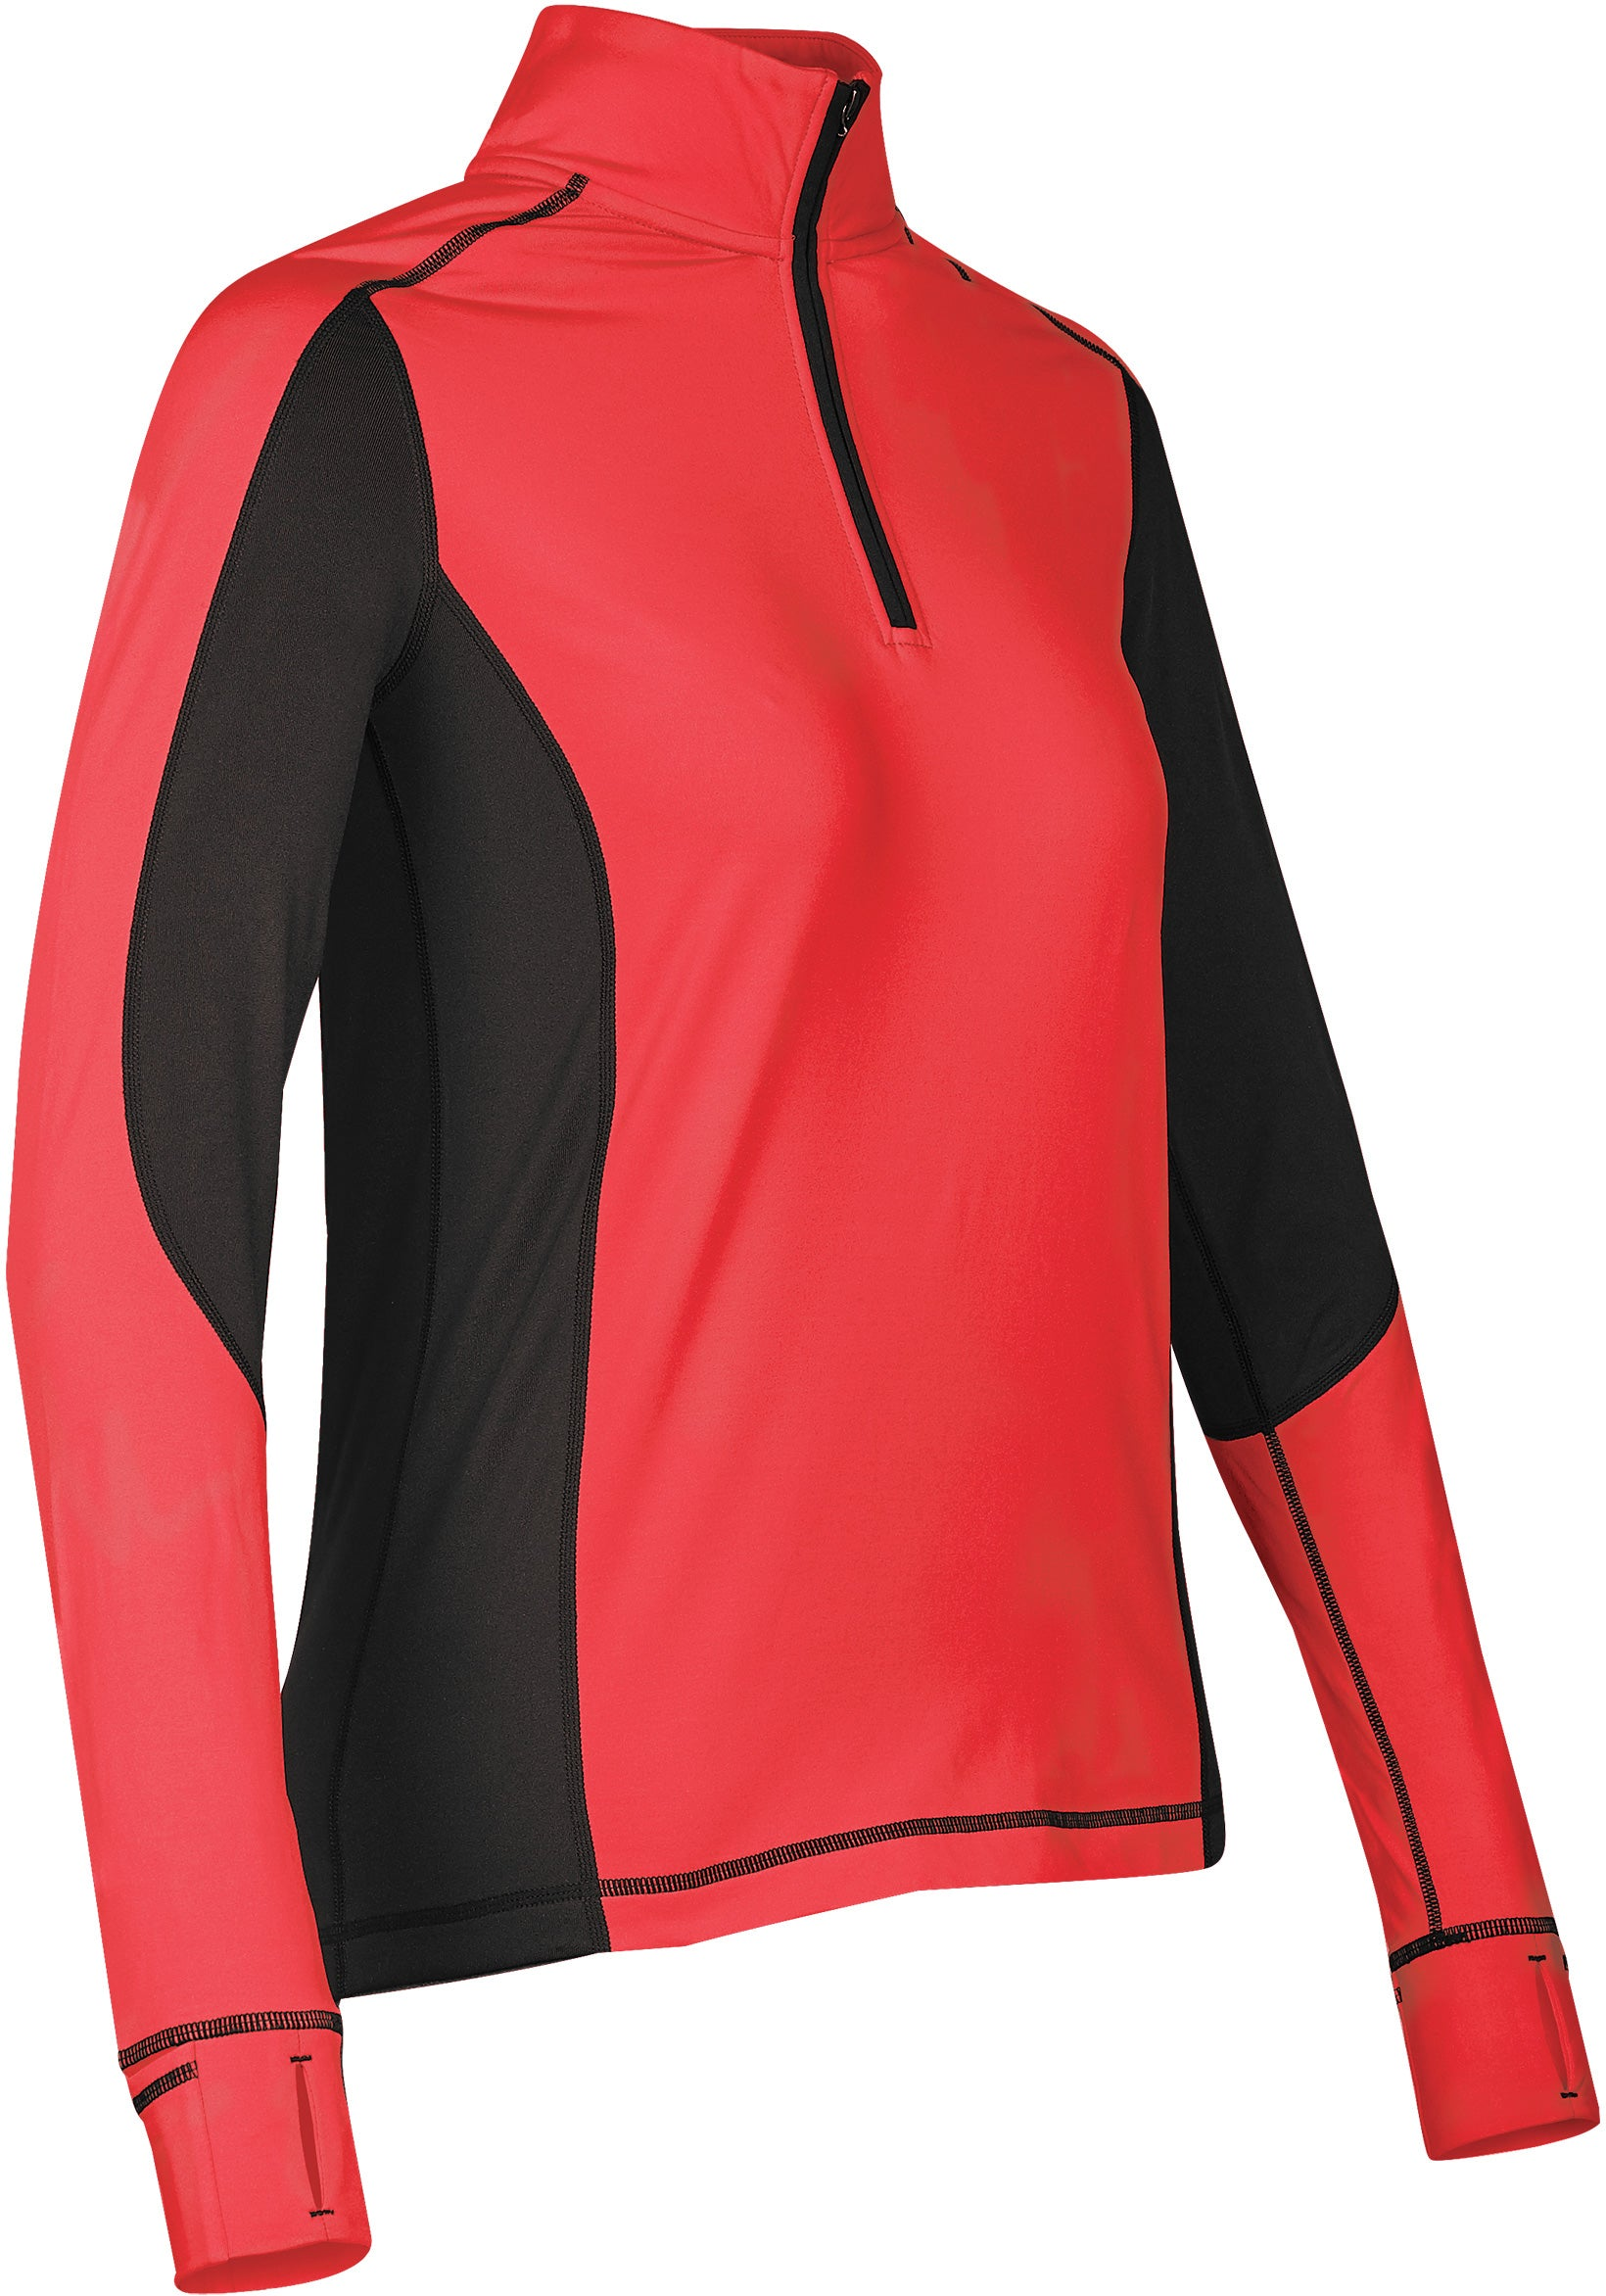 STORMTECH LADIES PHOENIX LIGHTWEIGHT 1/4 ZIP